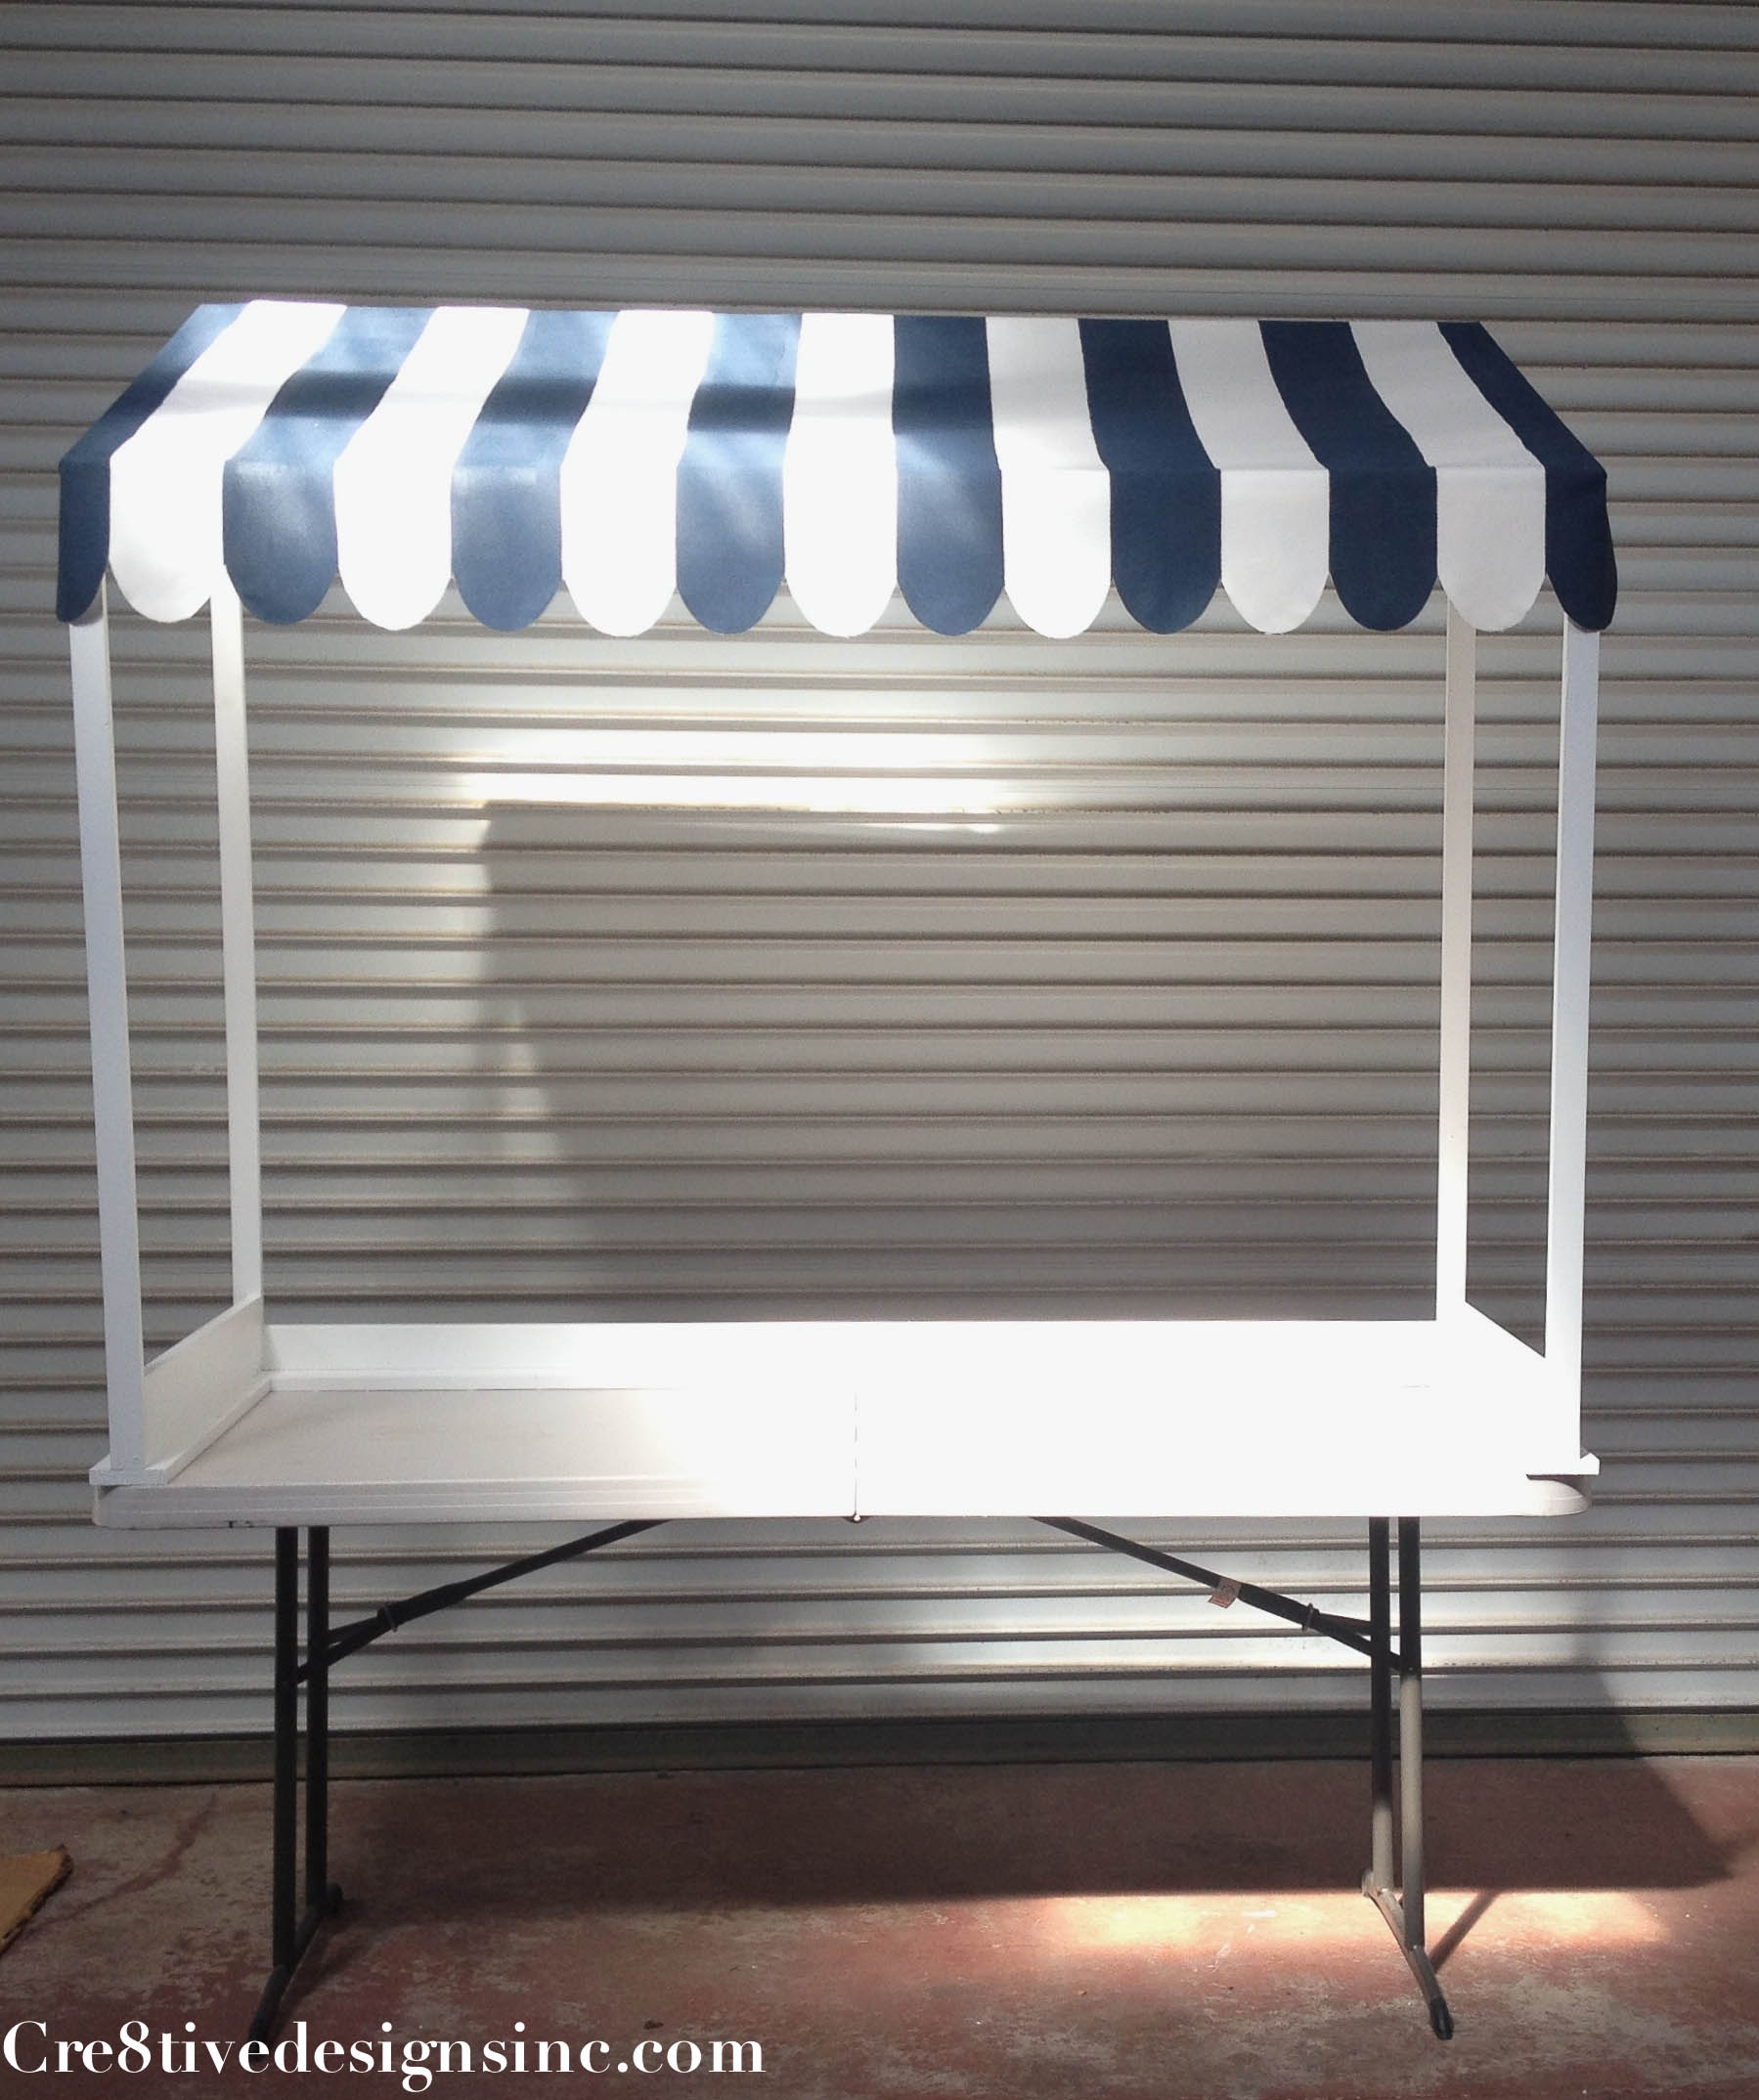 canopy tabletop & How to make a table top canopy - Cre8tive Designs Inc.